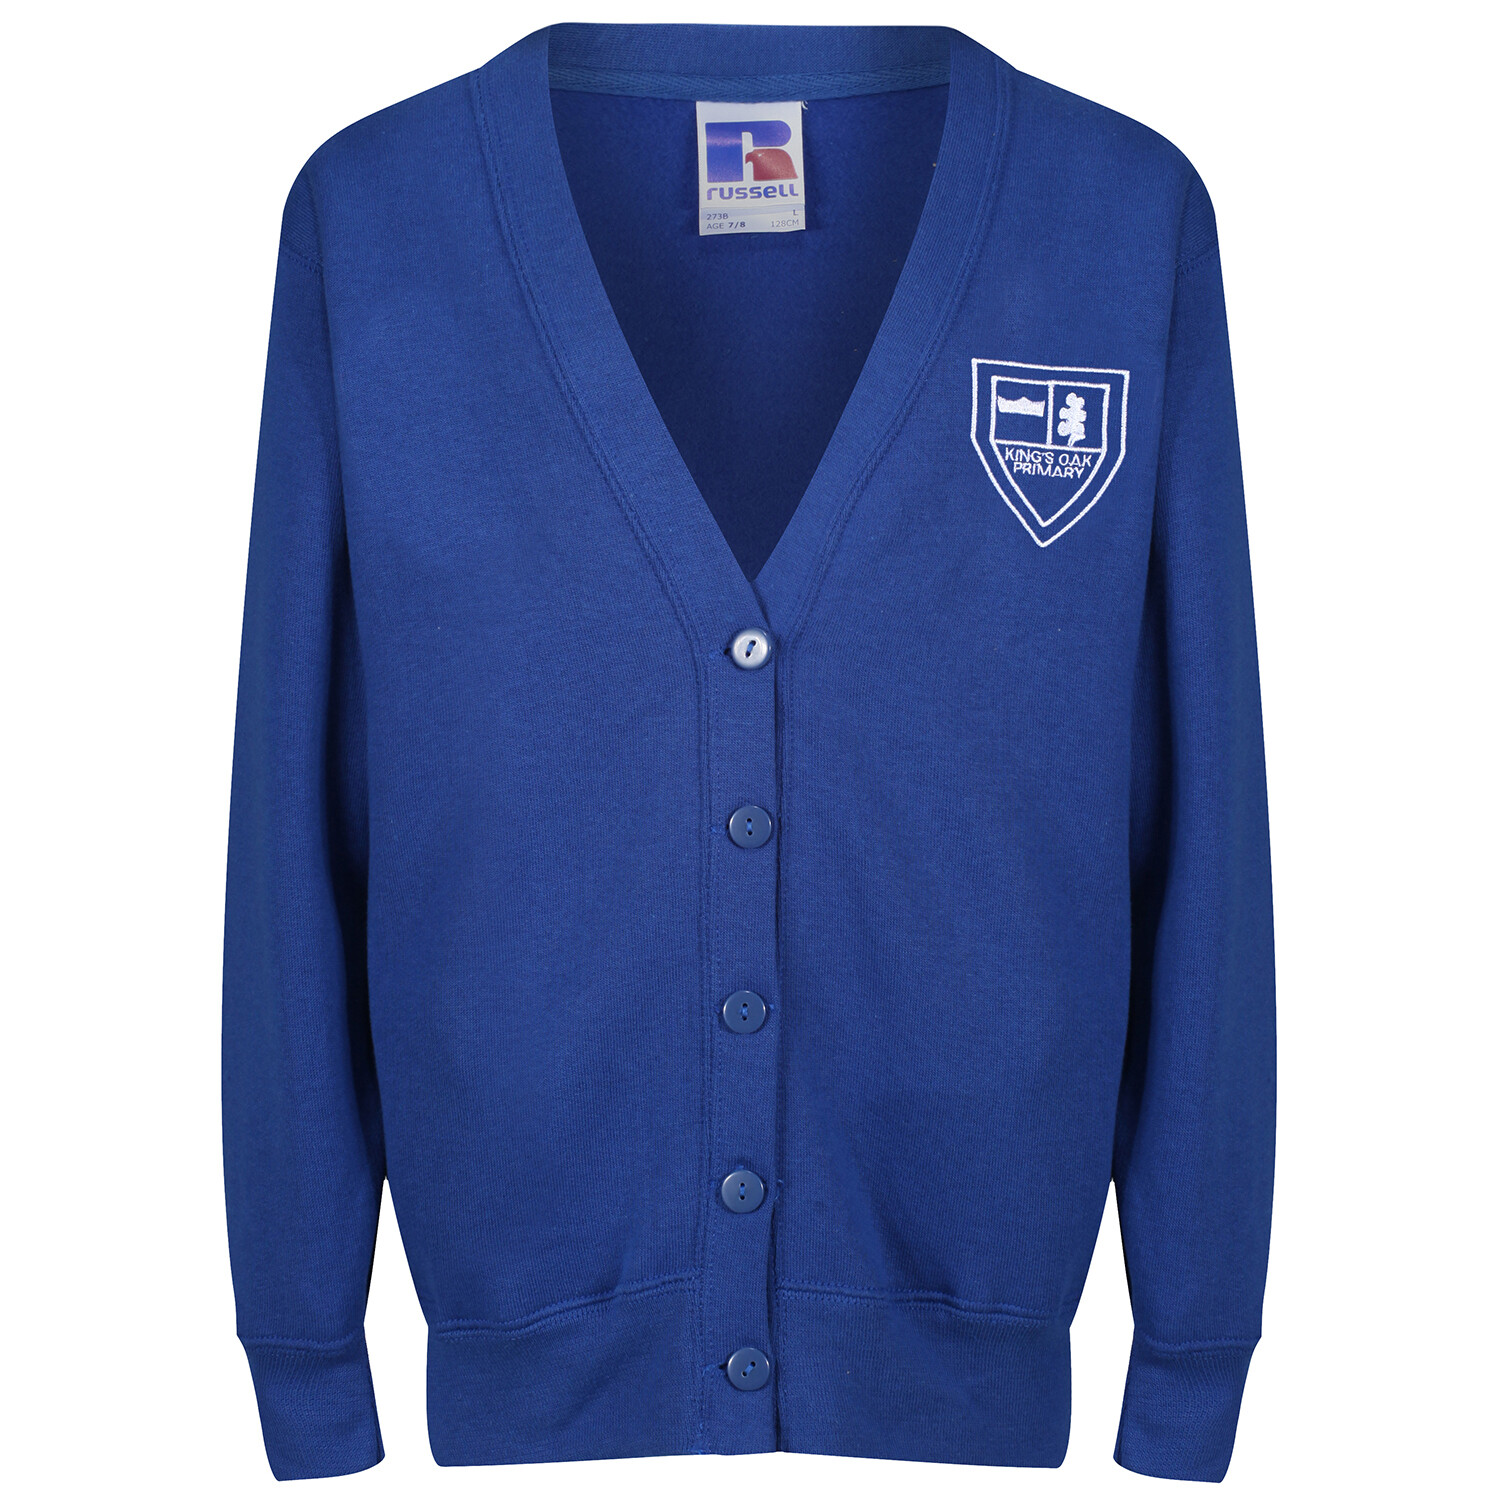 King's Oak Primary Sweatshirt Cardigan